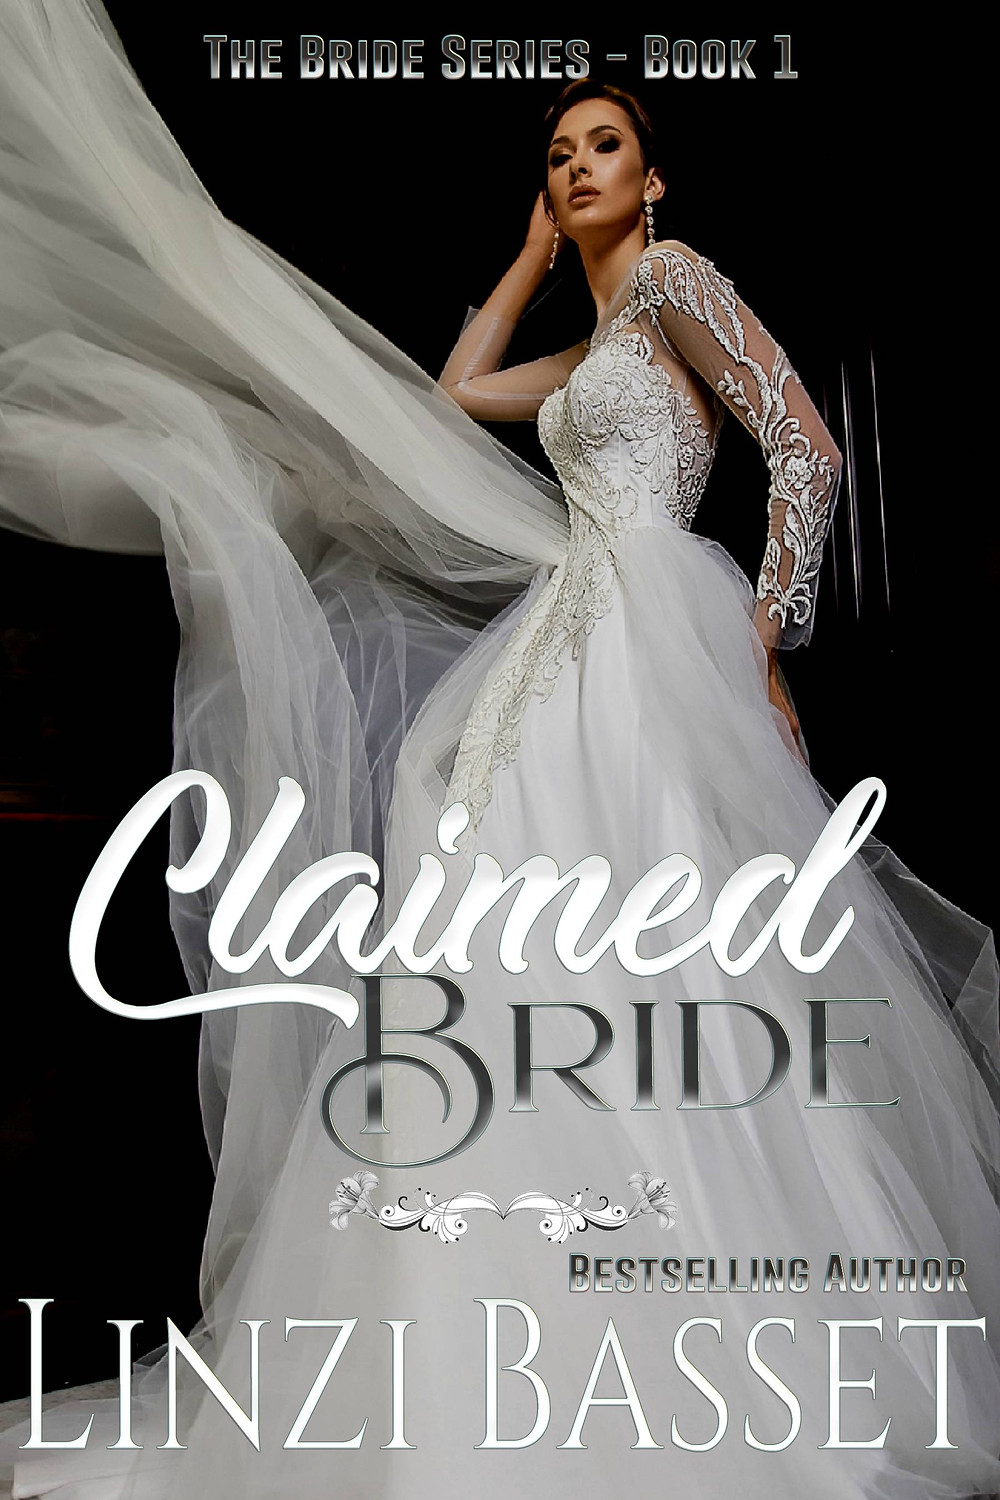 Claimed Bride - Bestselling latest release by Linzi Basset